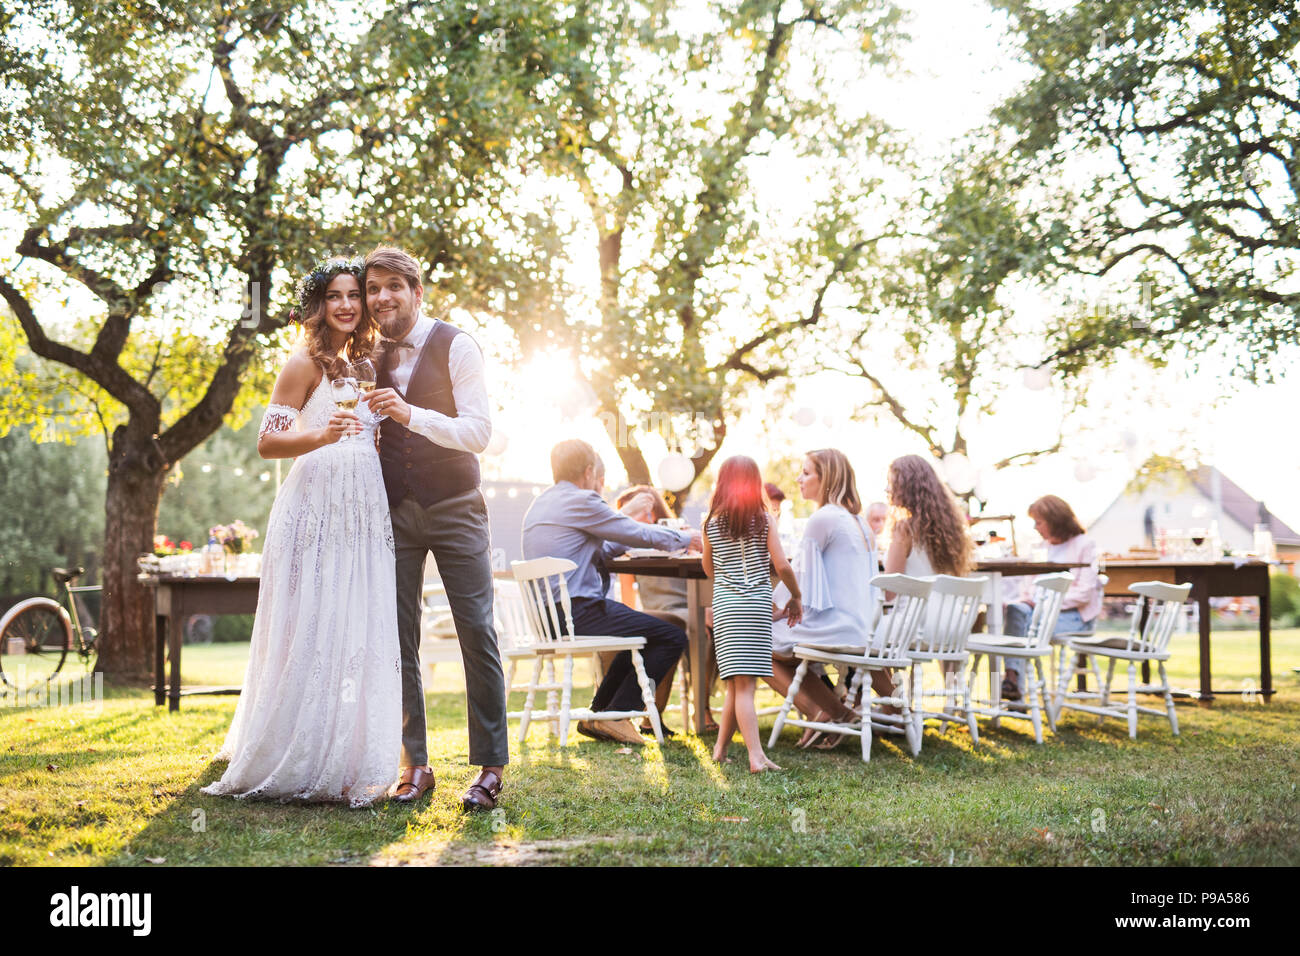 Bride and groom clinking glasses at wedding reception outside in the backyard. - Stock Image